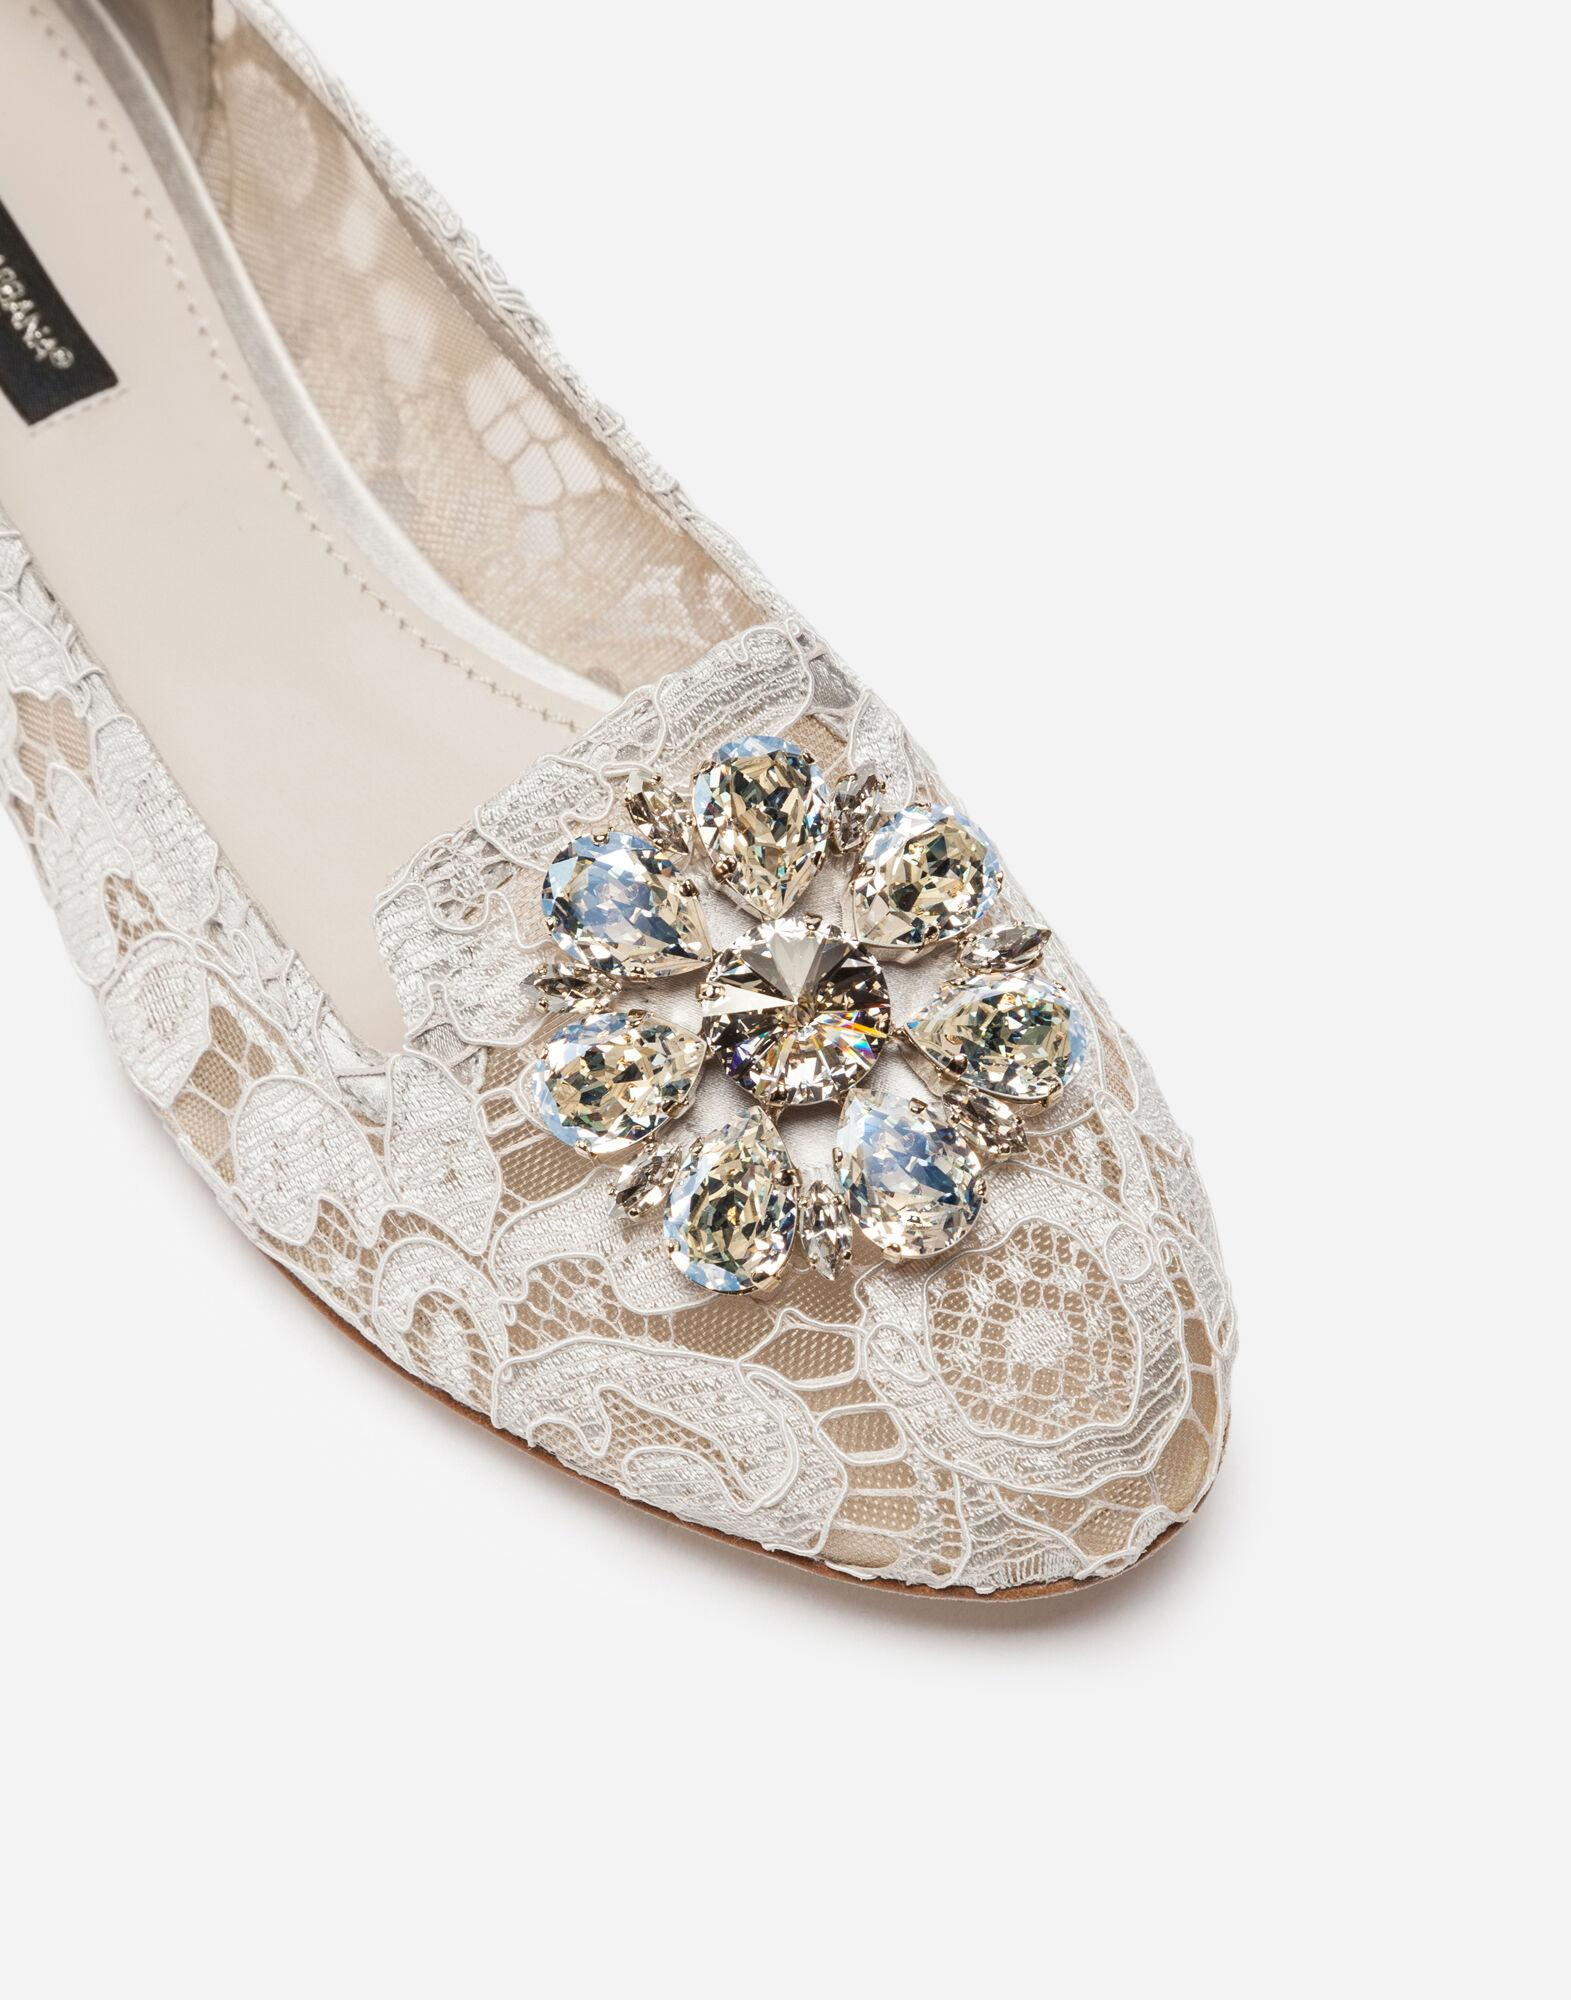 Slipper in Taormina lace with crystals 1